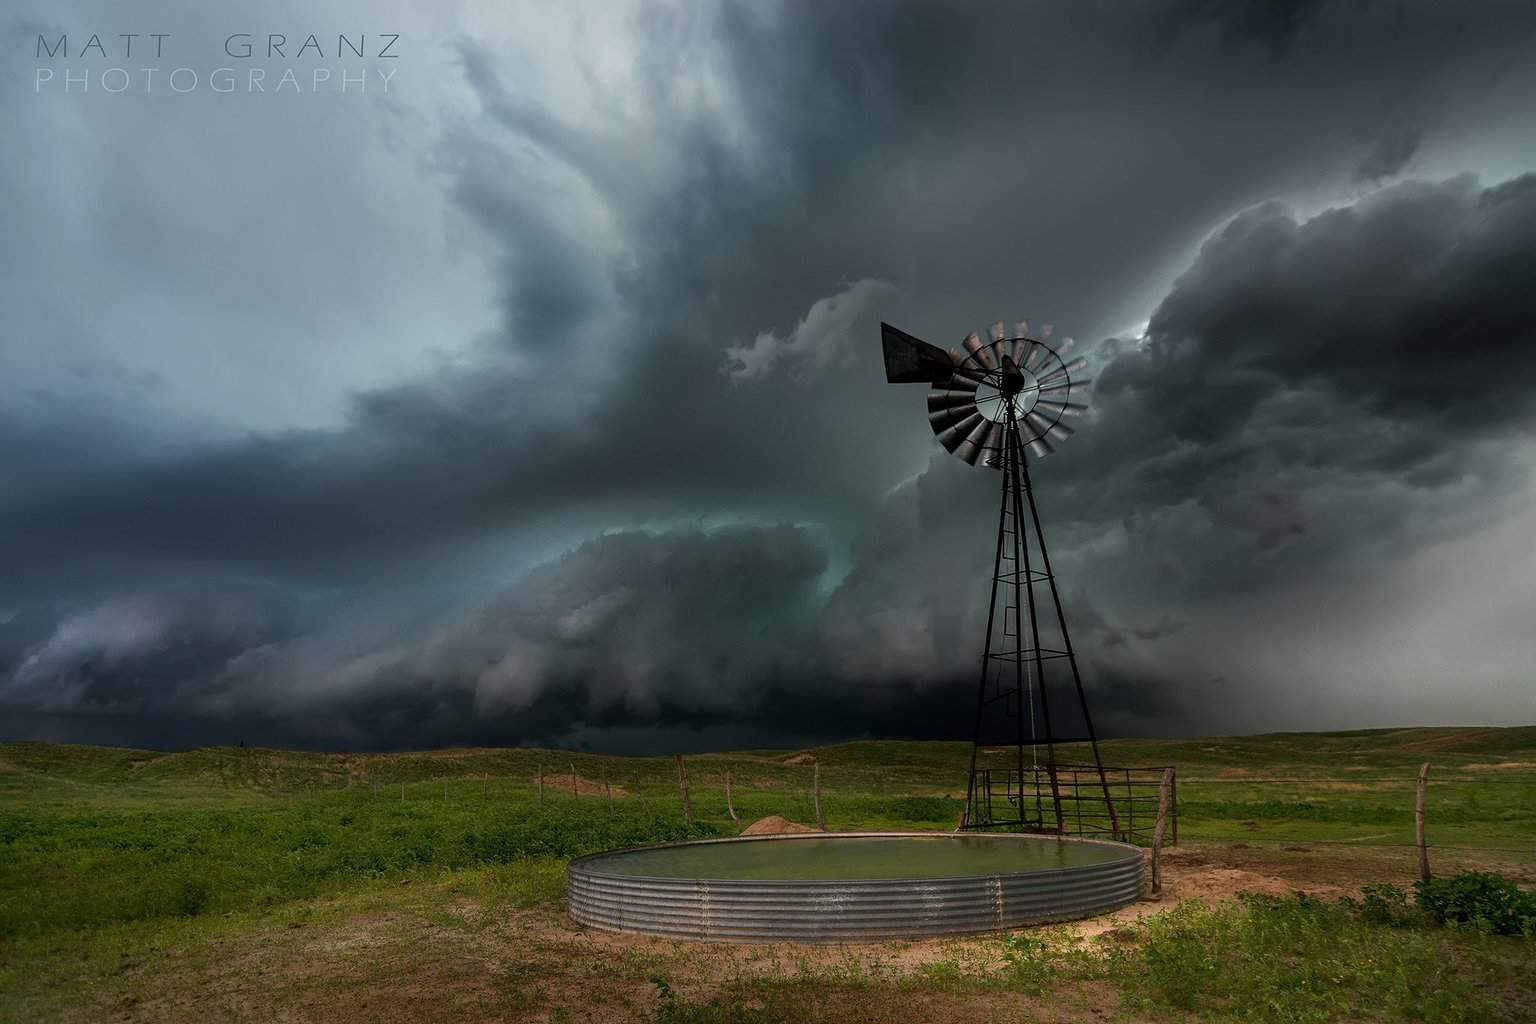 The Old Windmill and a storm. I was so excited to shoot this scene that I tripped and fell head first into the ground as I ran up to this spot... I and my camera lived to shoot another day. LOL.